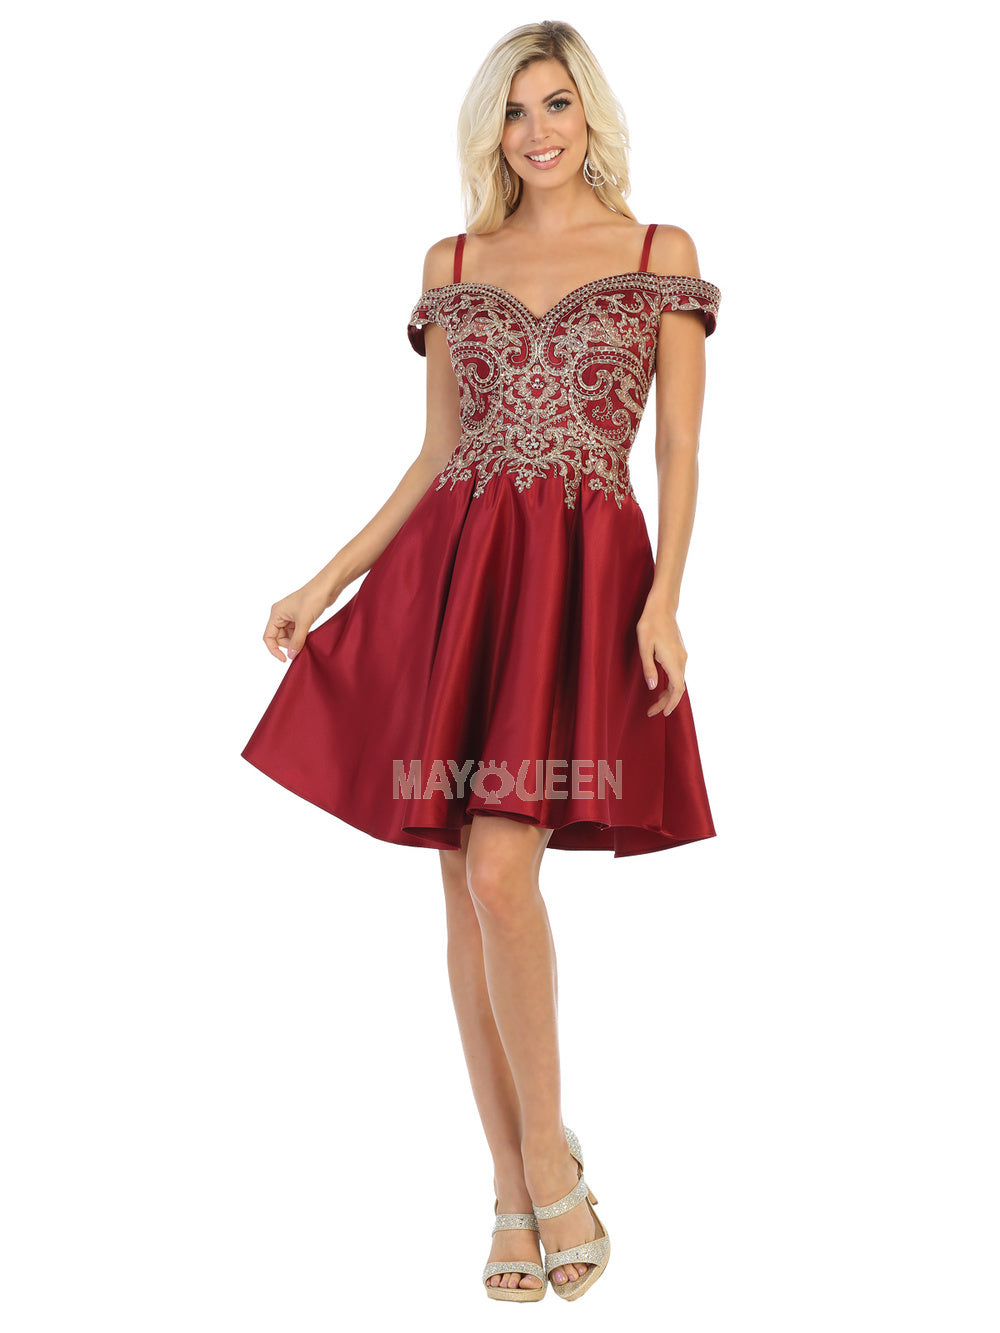 Mayqueen Size Chart E MQ 1661 - Cold Shoulder Satin Short Homecoming Dress with Embroidered Bodice - Diggz Prom